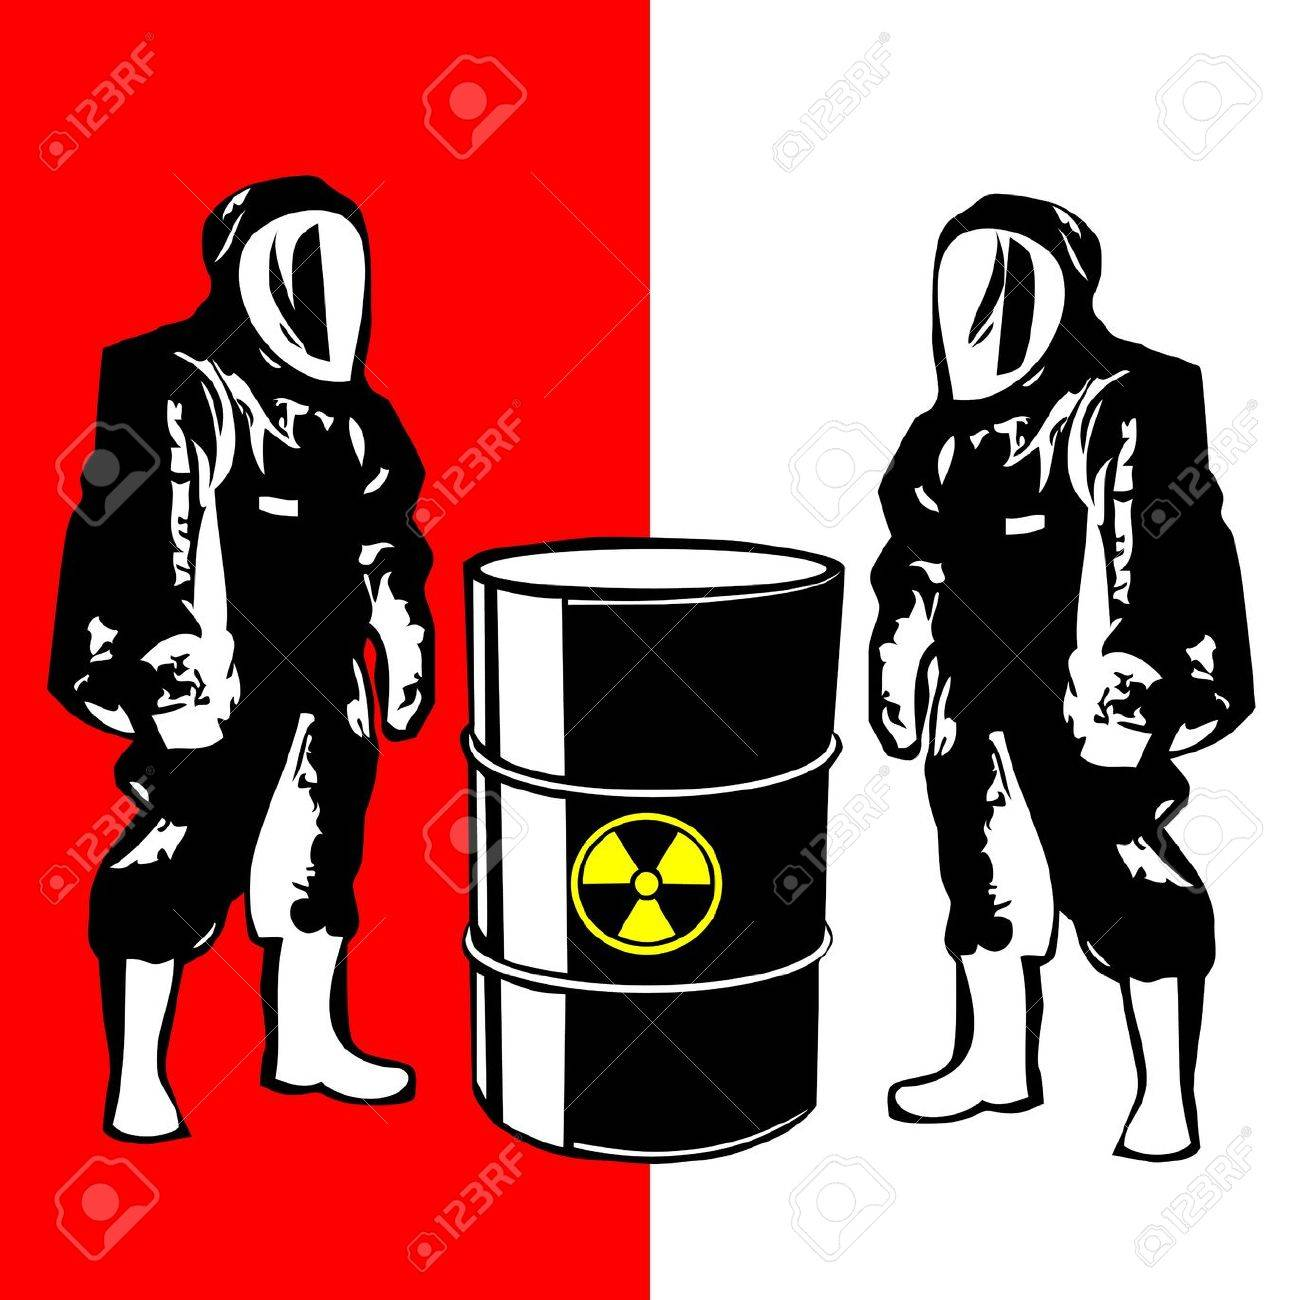 Person In Biohazard Suit Royalty Free Cliparts, Vectors, And Stock ...